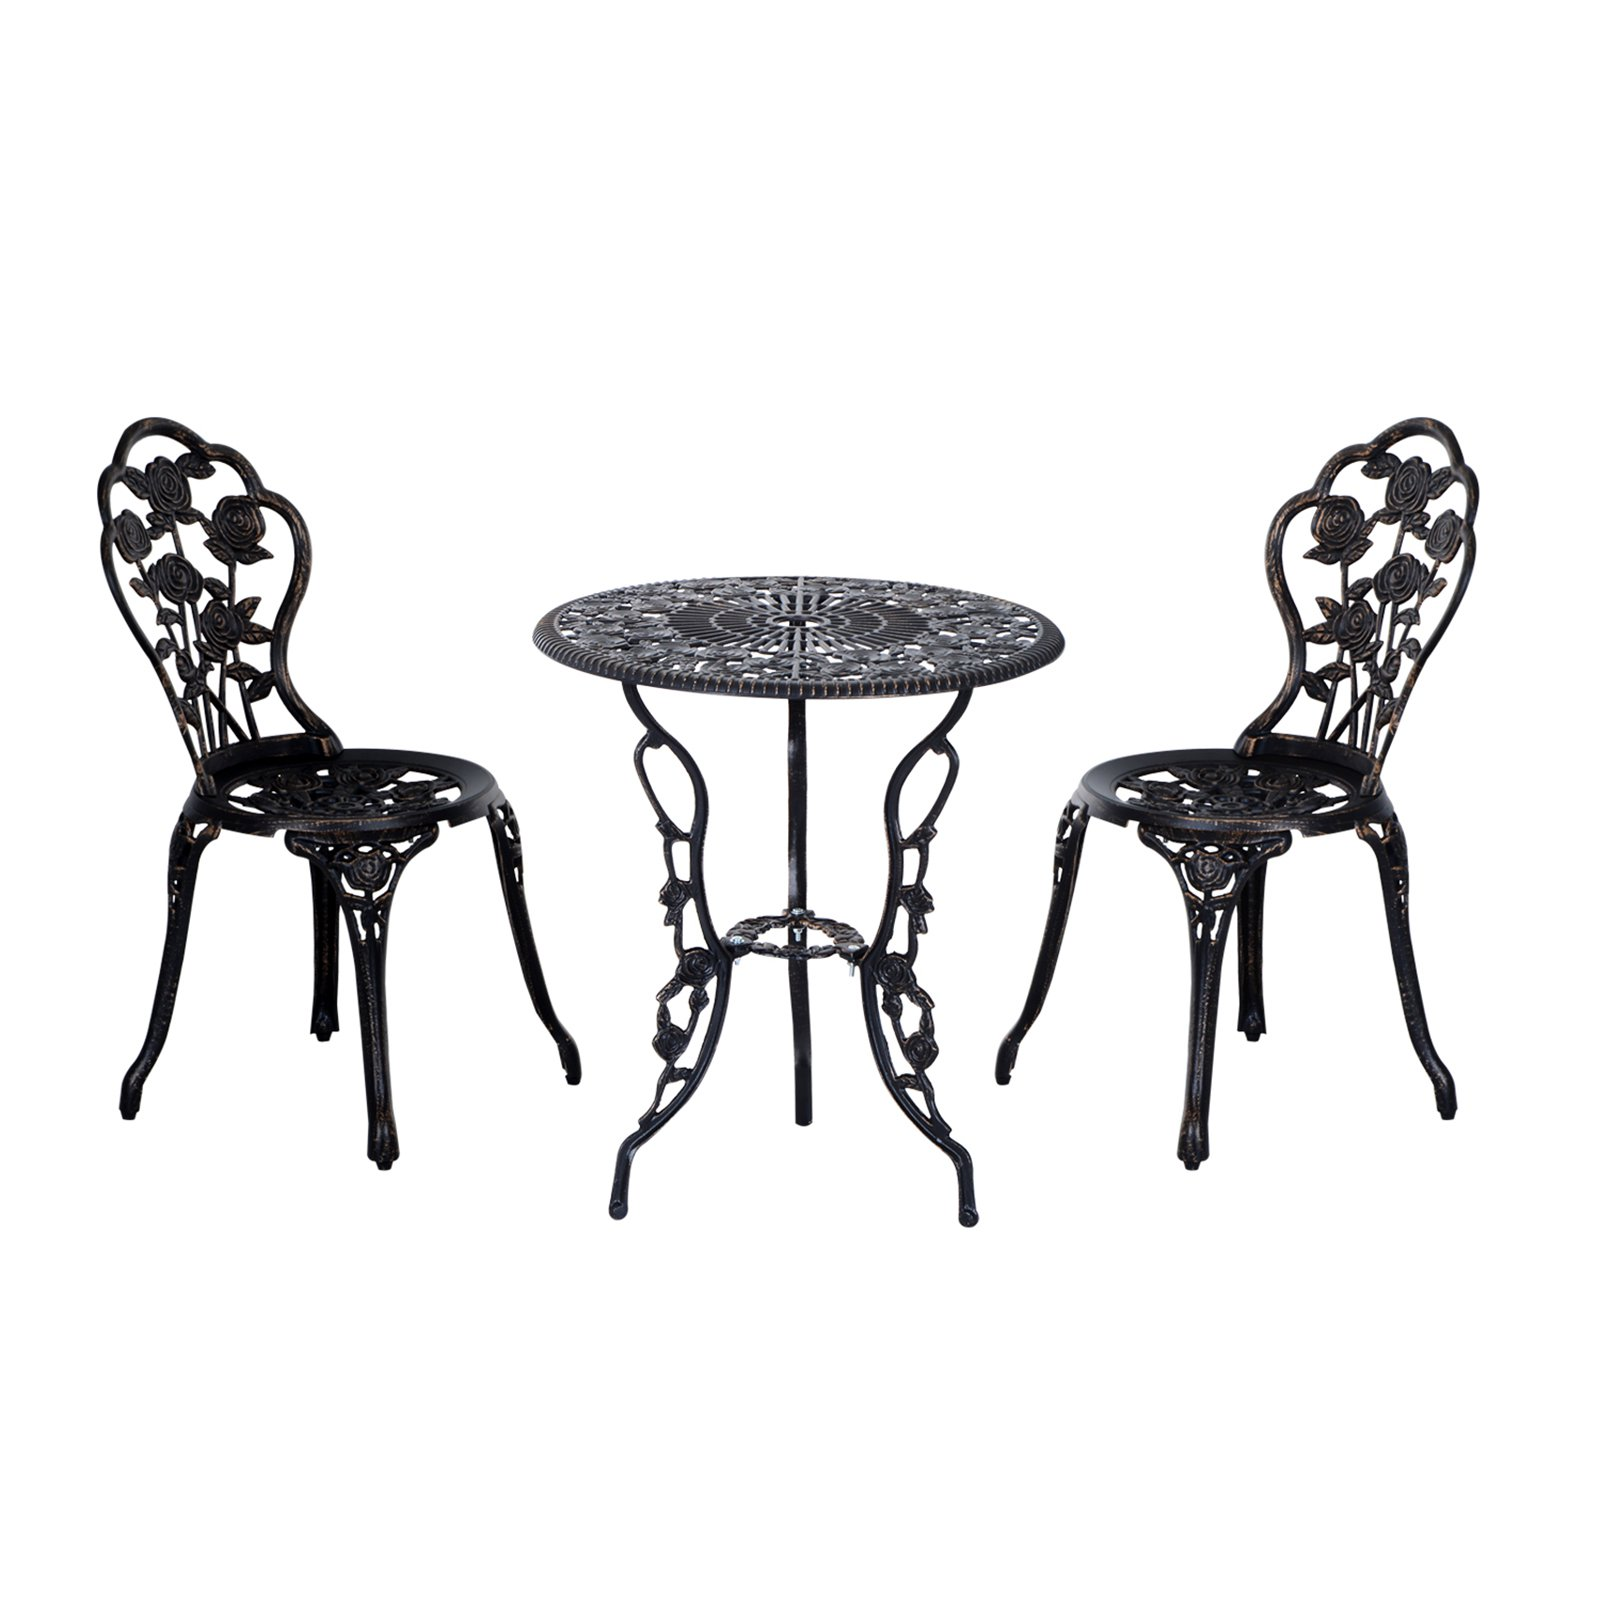 Outsunny Aluminum 3 Piece Decorative Back Roses Antique Style Patio Bistro Set